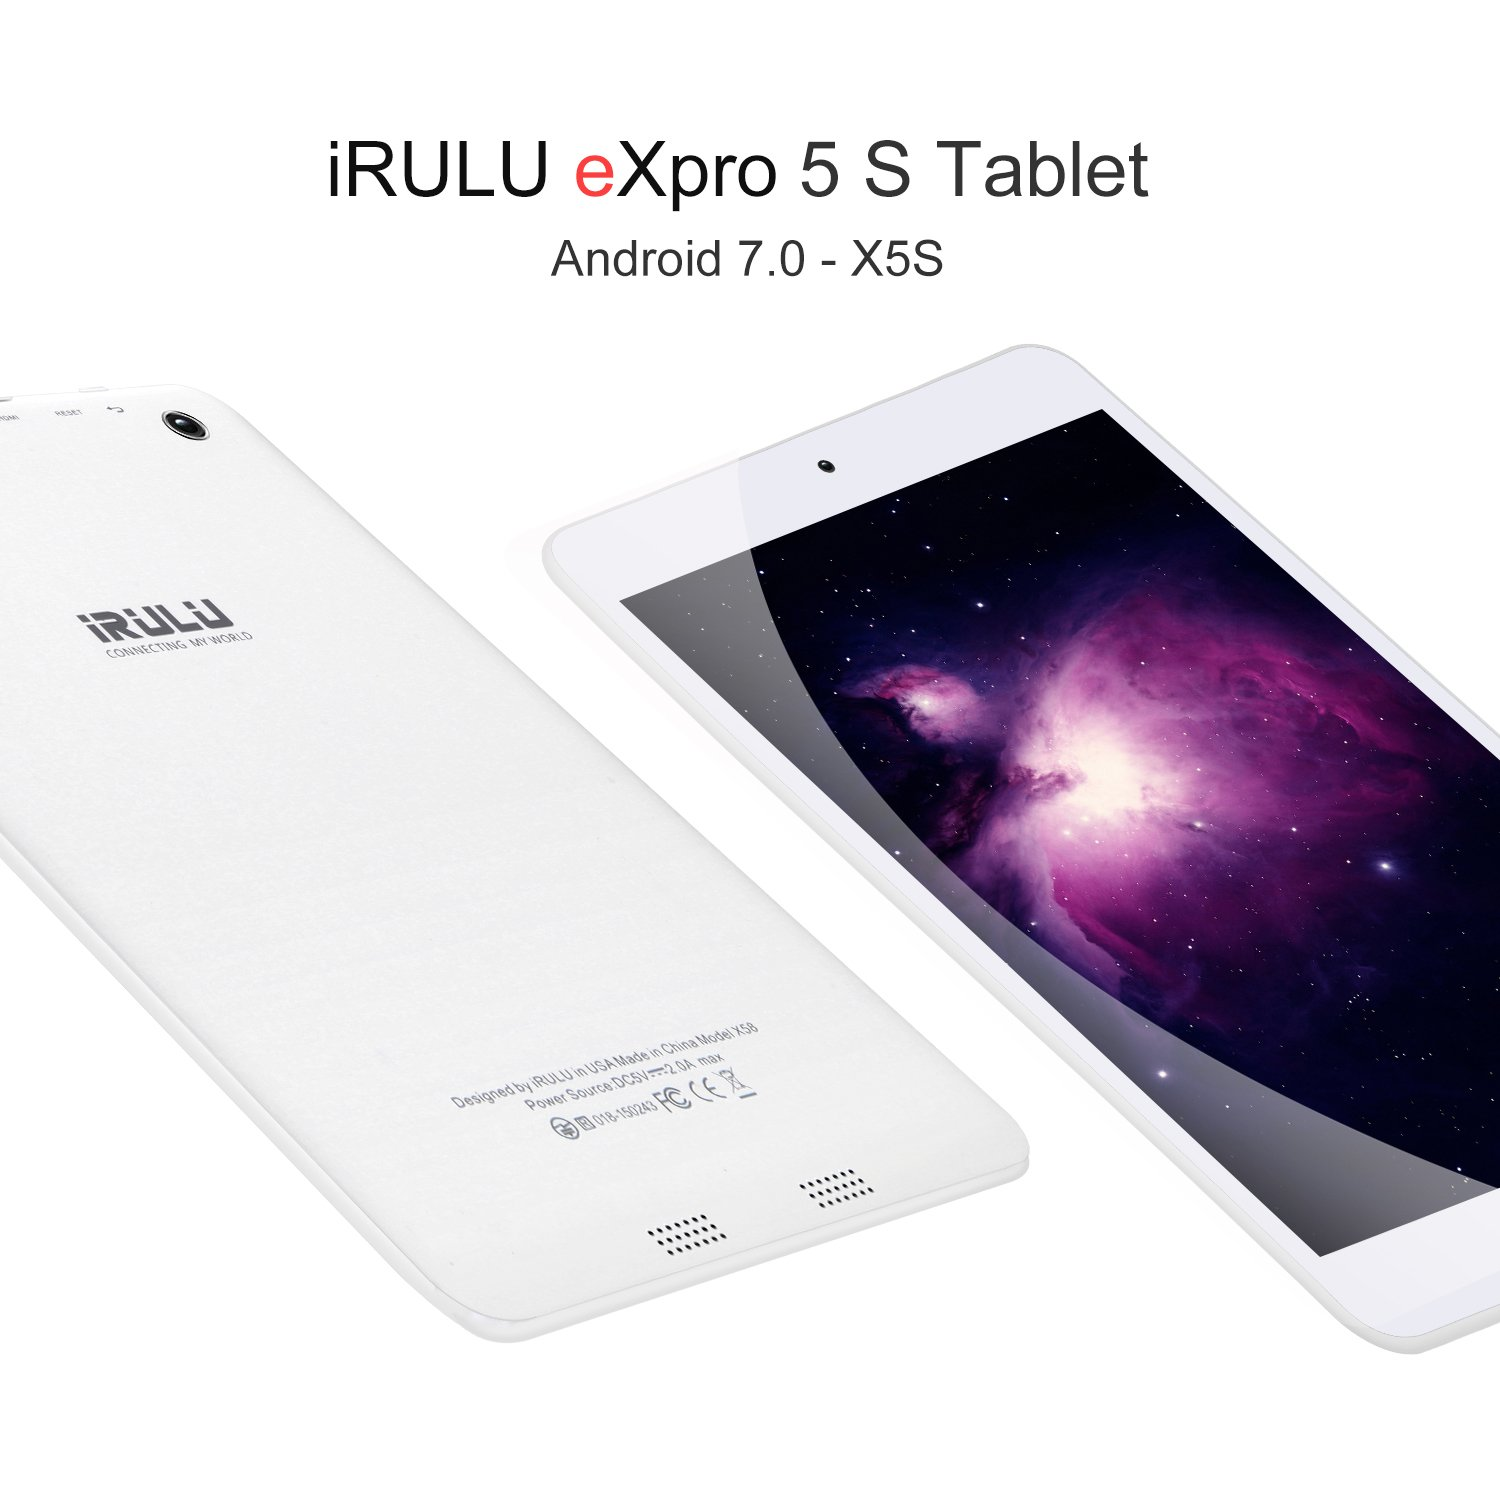 """7.85"""" Tablet Android Google 7.0, 1GB/16GB, 1.3gHz Quad Core,768x1024 IPS HD Display,Dual Camera, Microsoft Mini HDMI Bluetooth G-Sensor Supported,GMS Certified,iRULU eXpro 5 S Tablet (X5 S)-White by iRULU (Image #3)"""